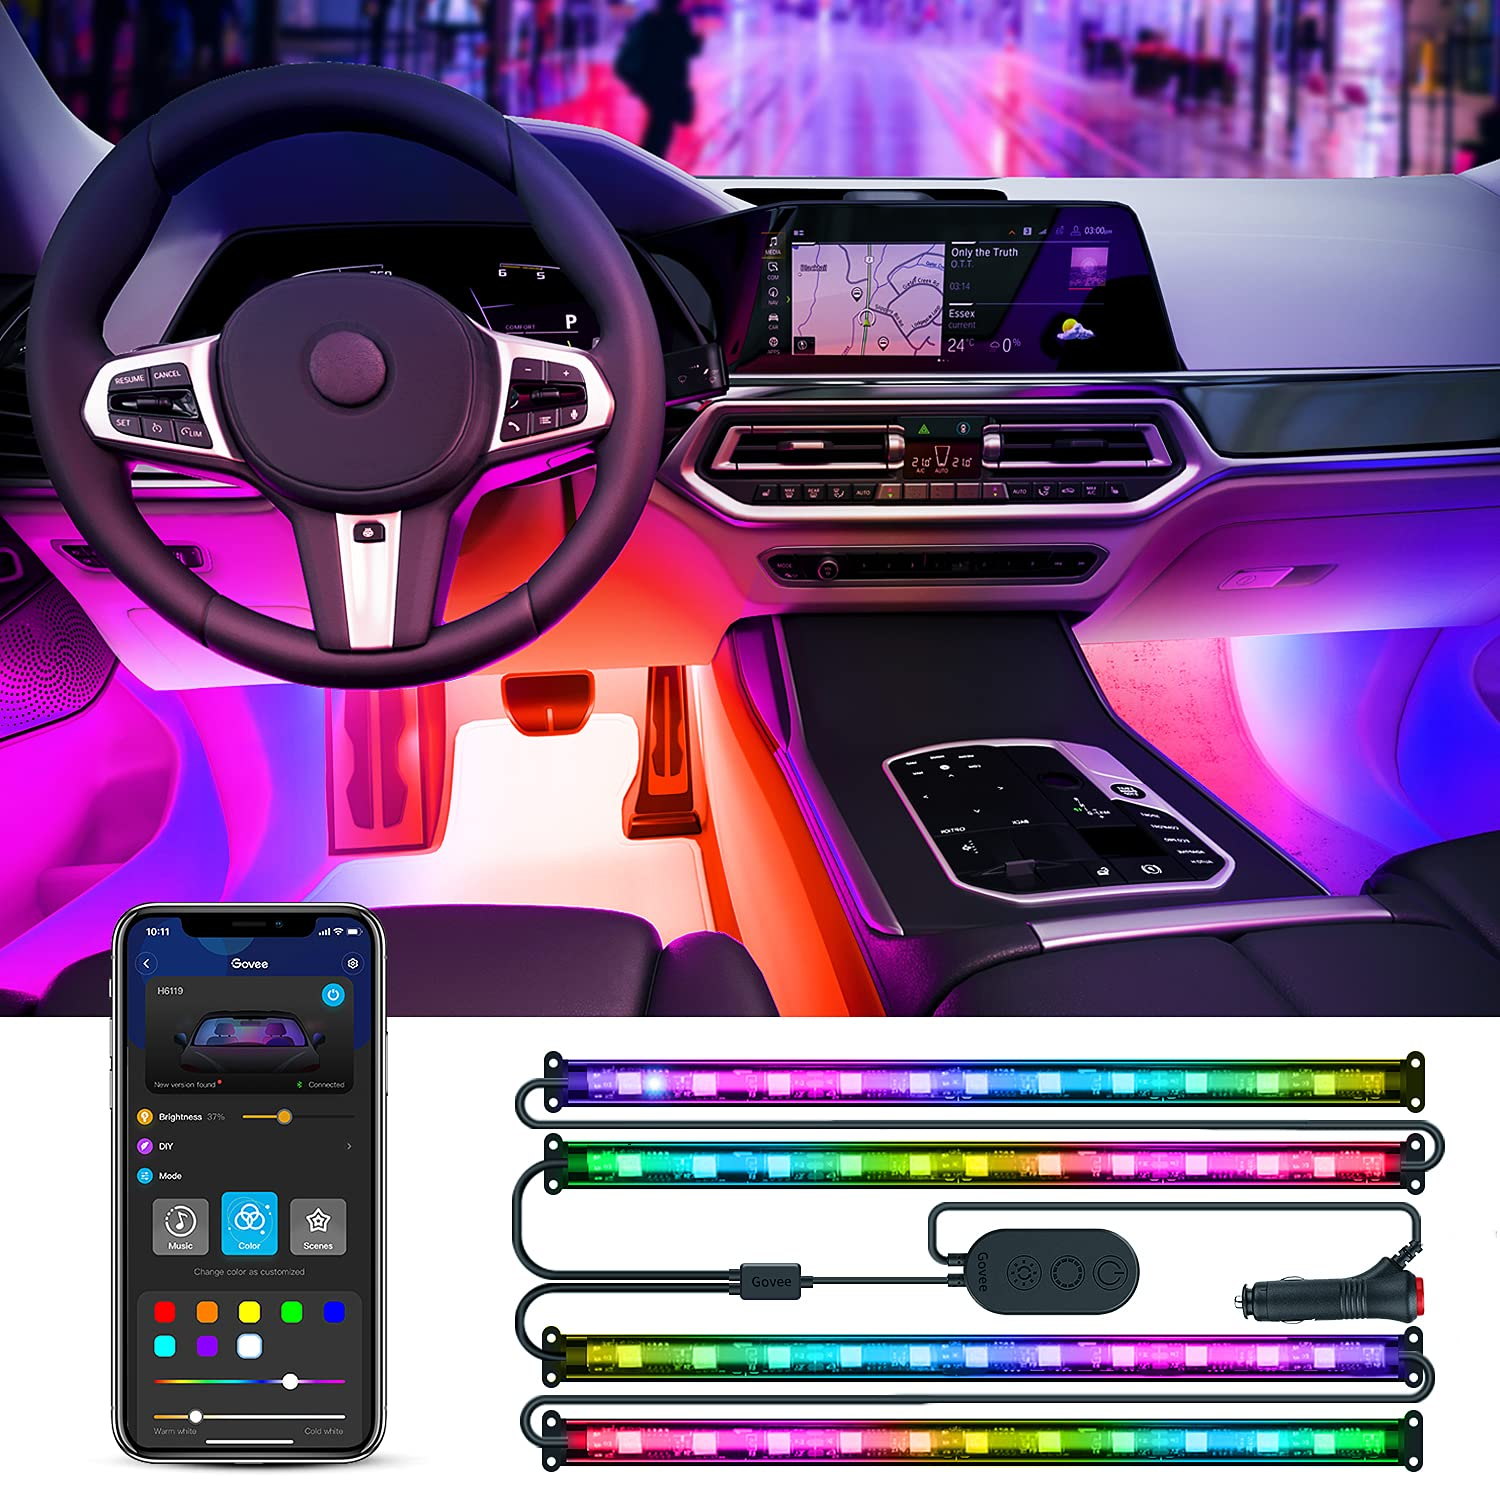 Govee RGBIC Interior Car Lights with Smart App Control, 2 Lines Design LED Car Lights, Music Sync Mode, DIY Mode, and Multiple Scene Options for Cars, Trucks, SUVs